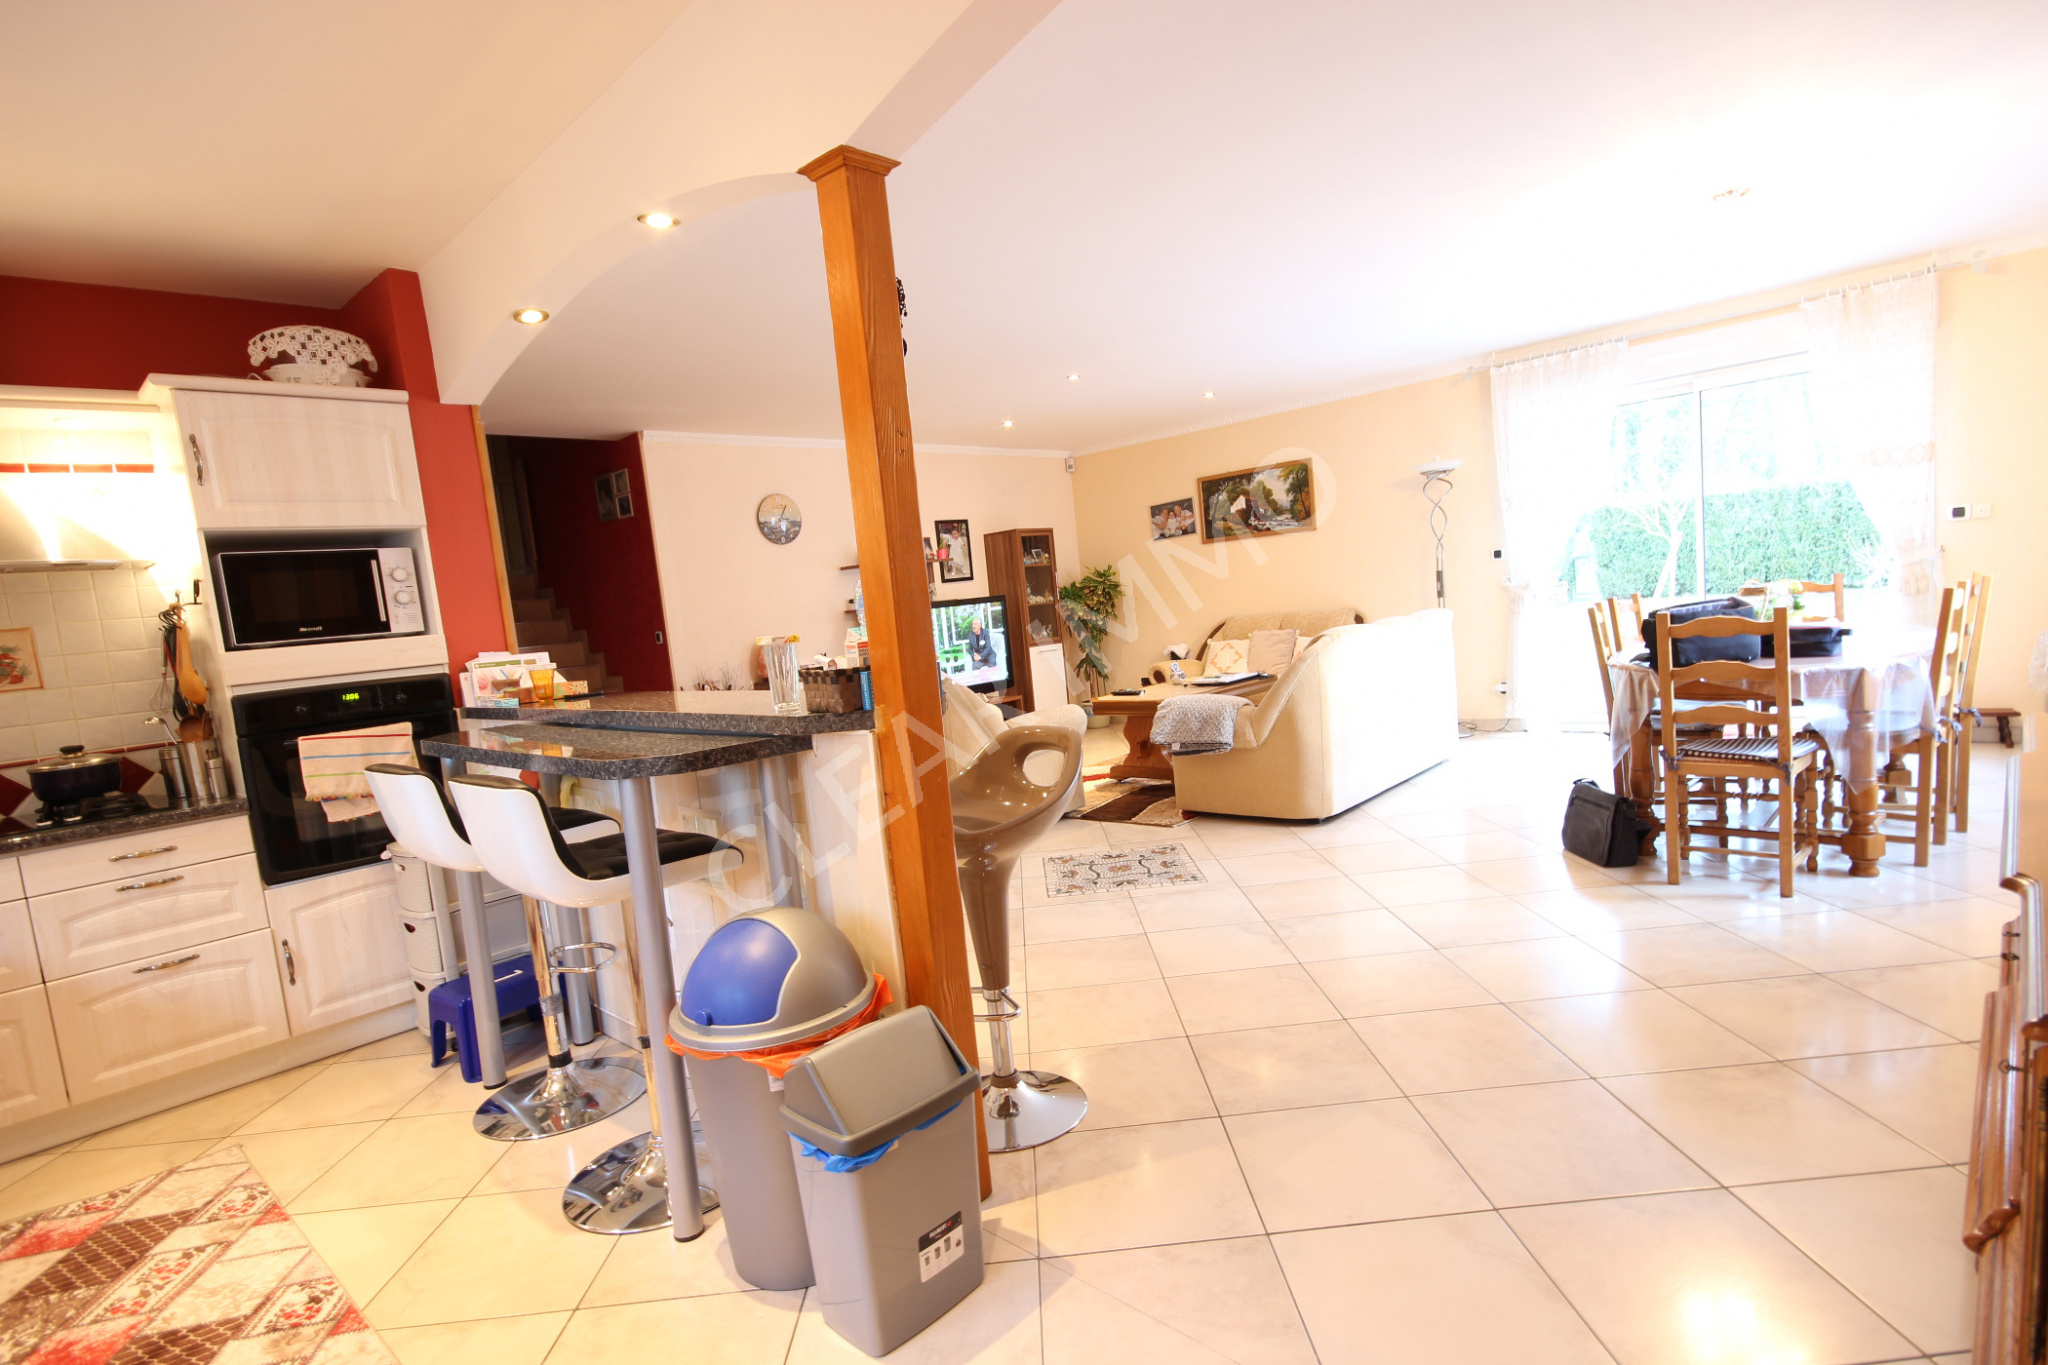 Annonce vente maison boulay moselle 57220 130 m 260 for Appartement boulay